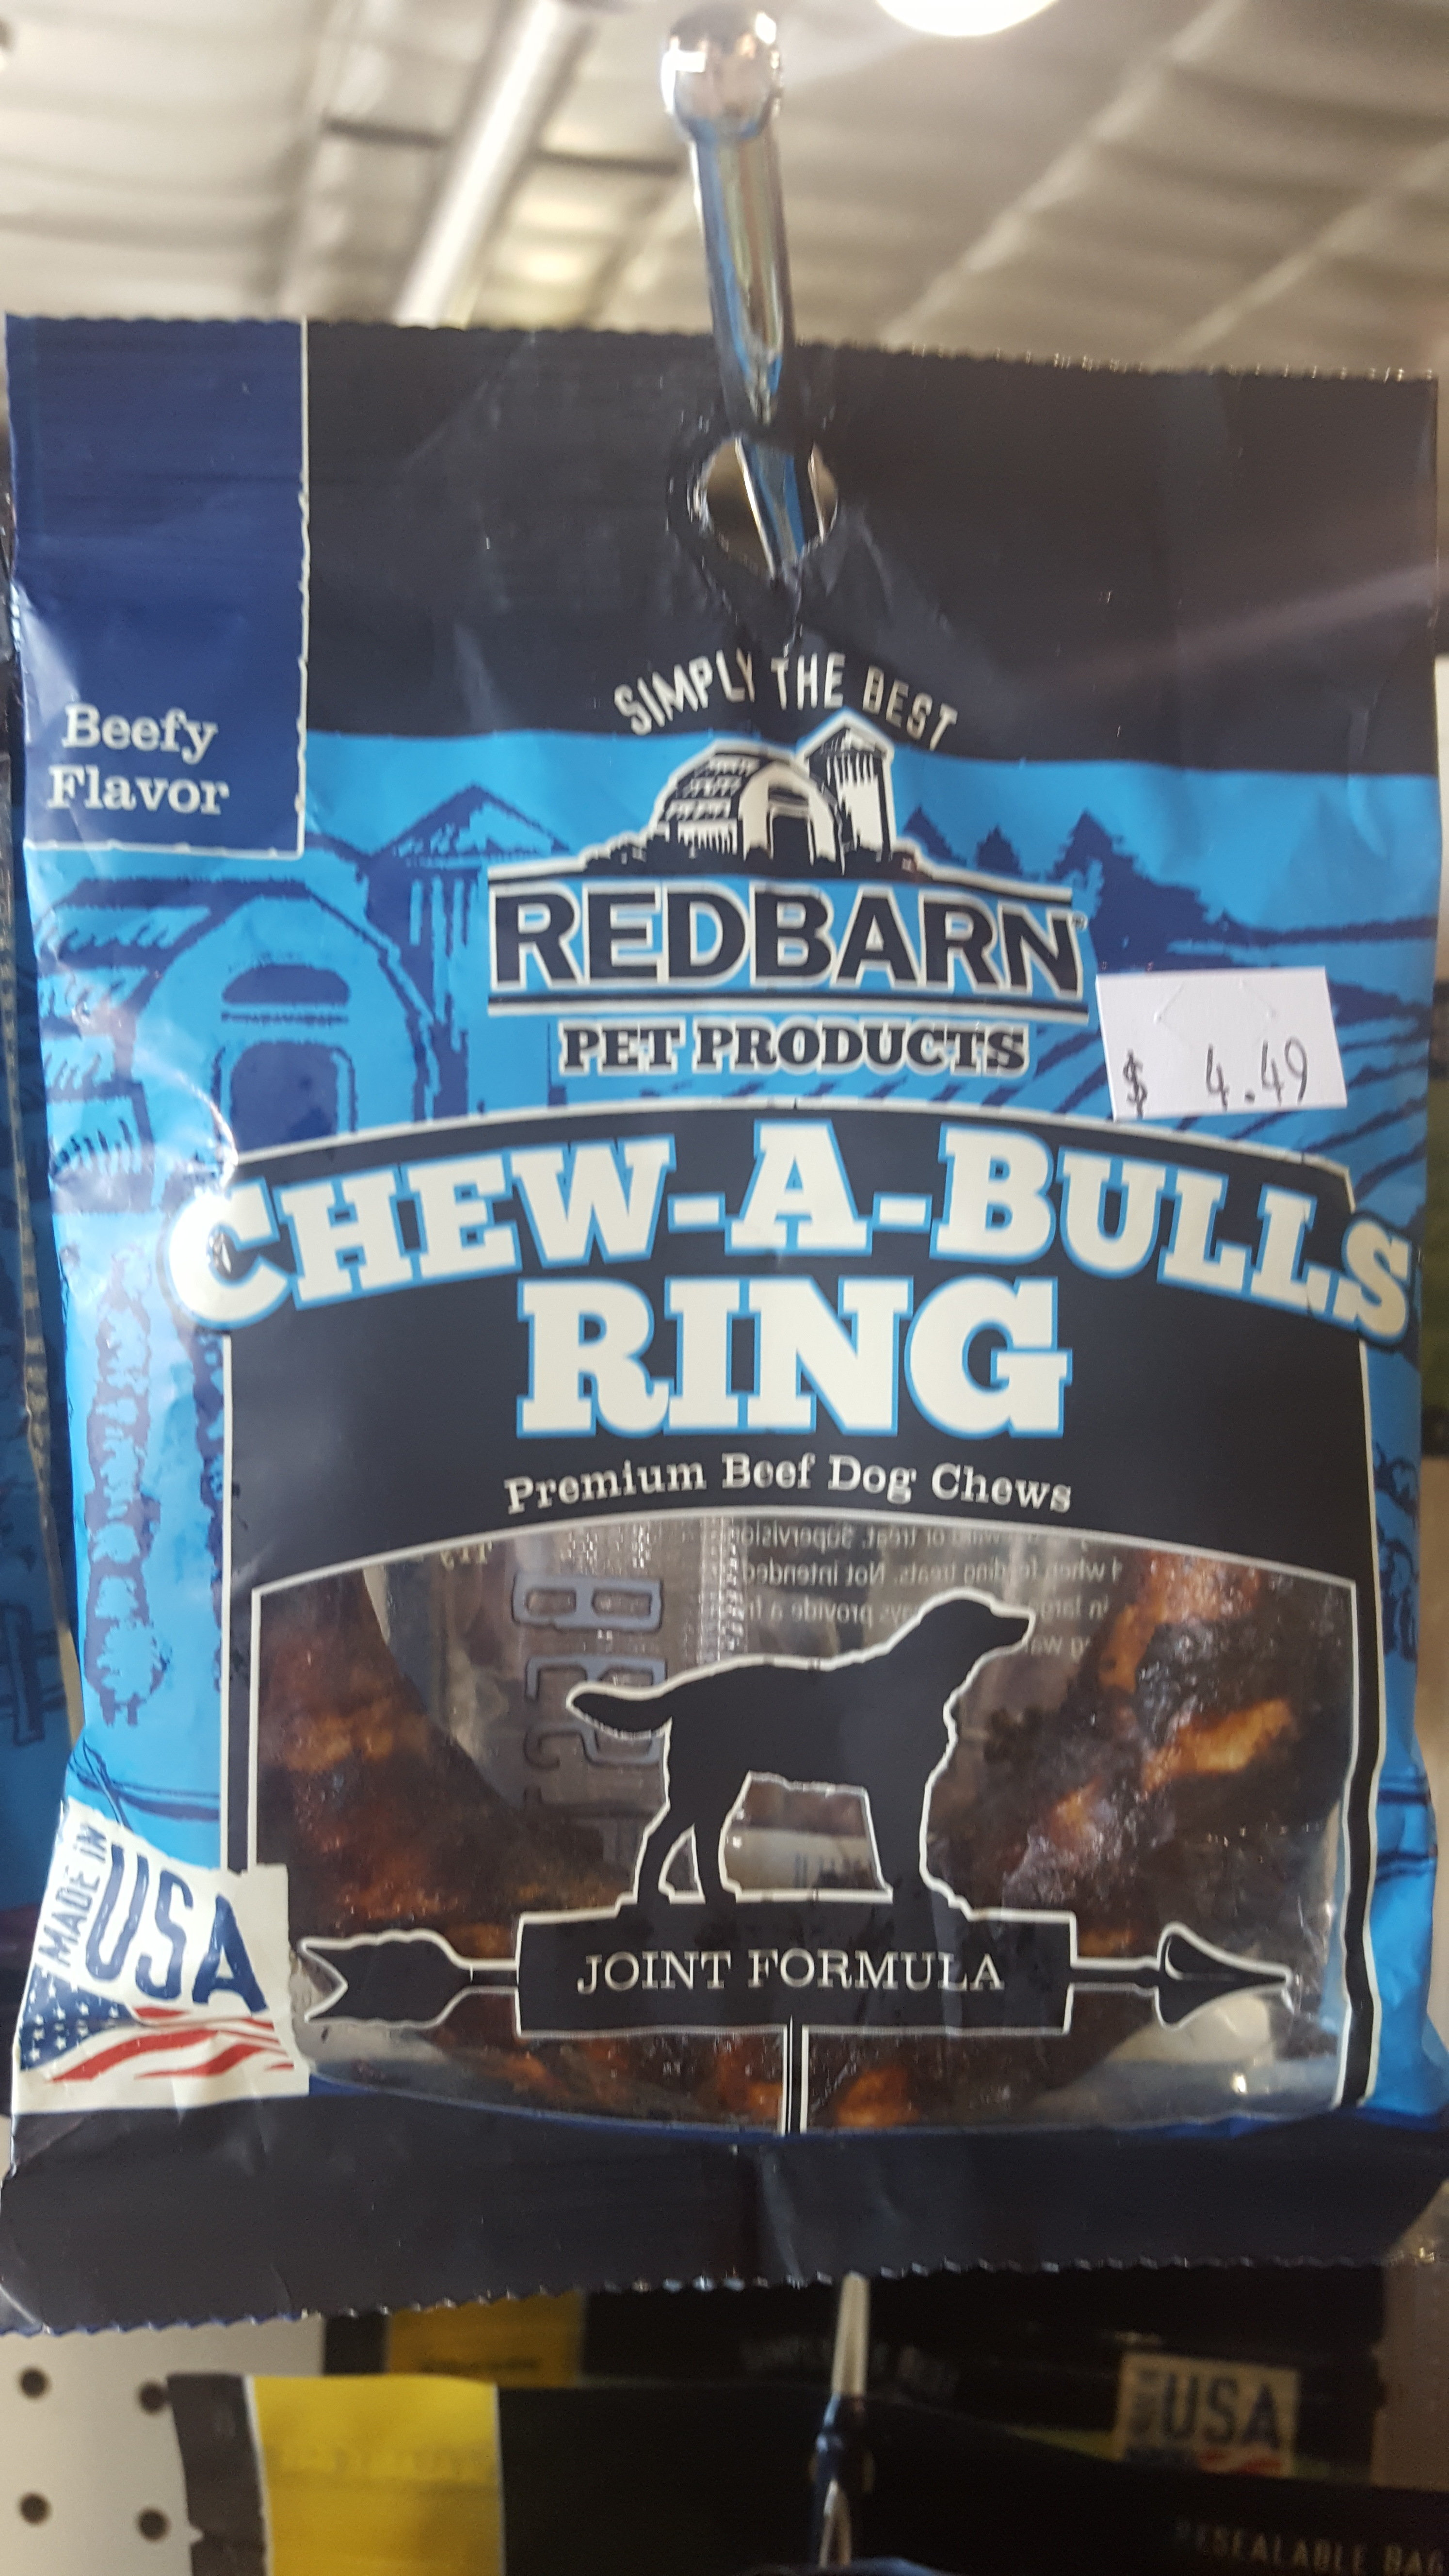 Redbarn Chew-a-bull Ring Beef Flavored 2JF0GN633FX5T